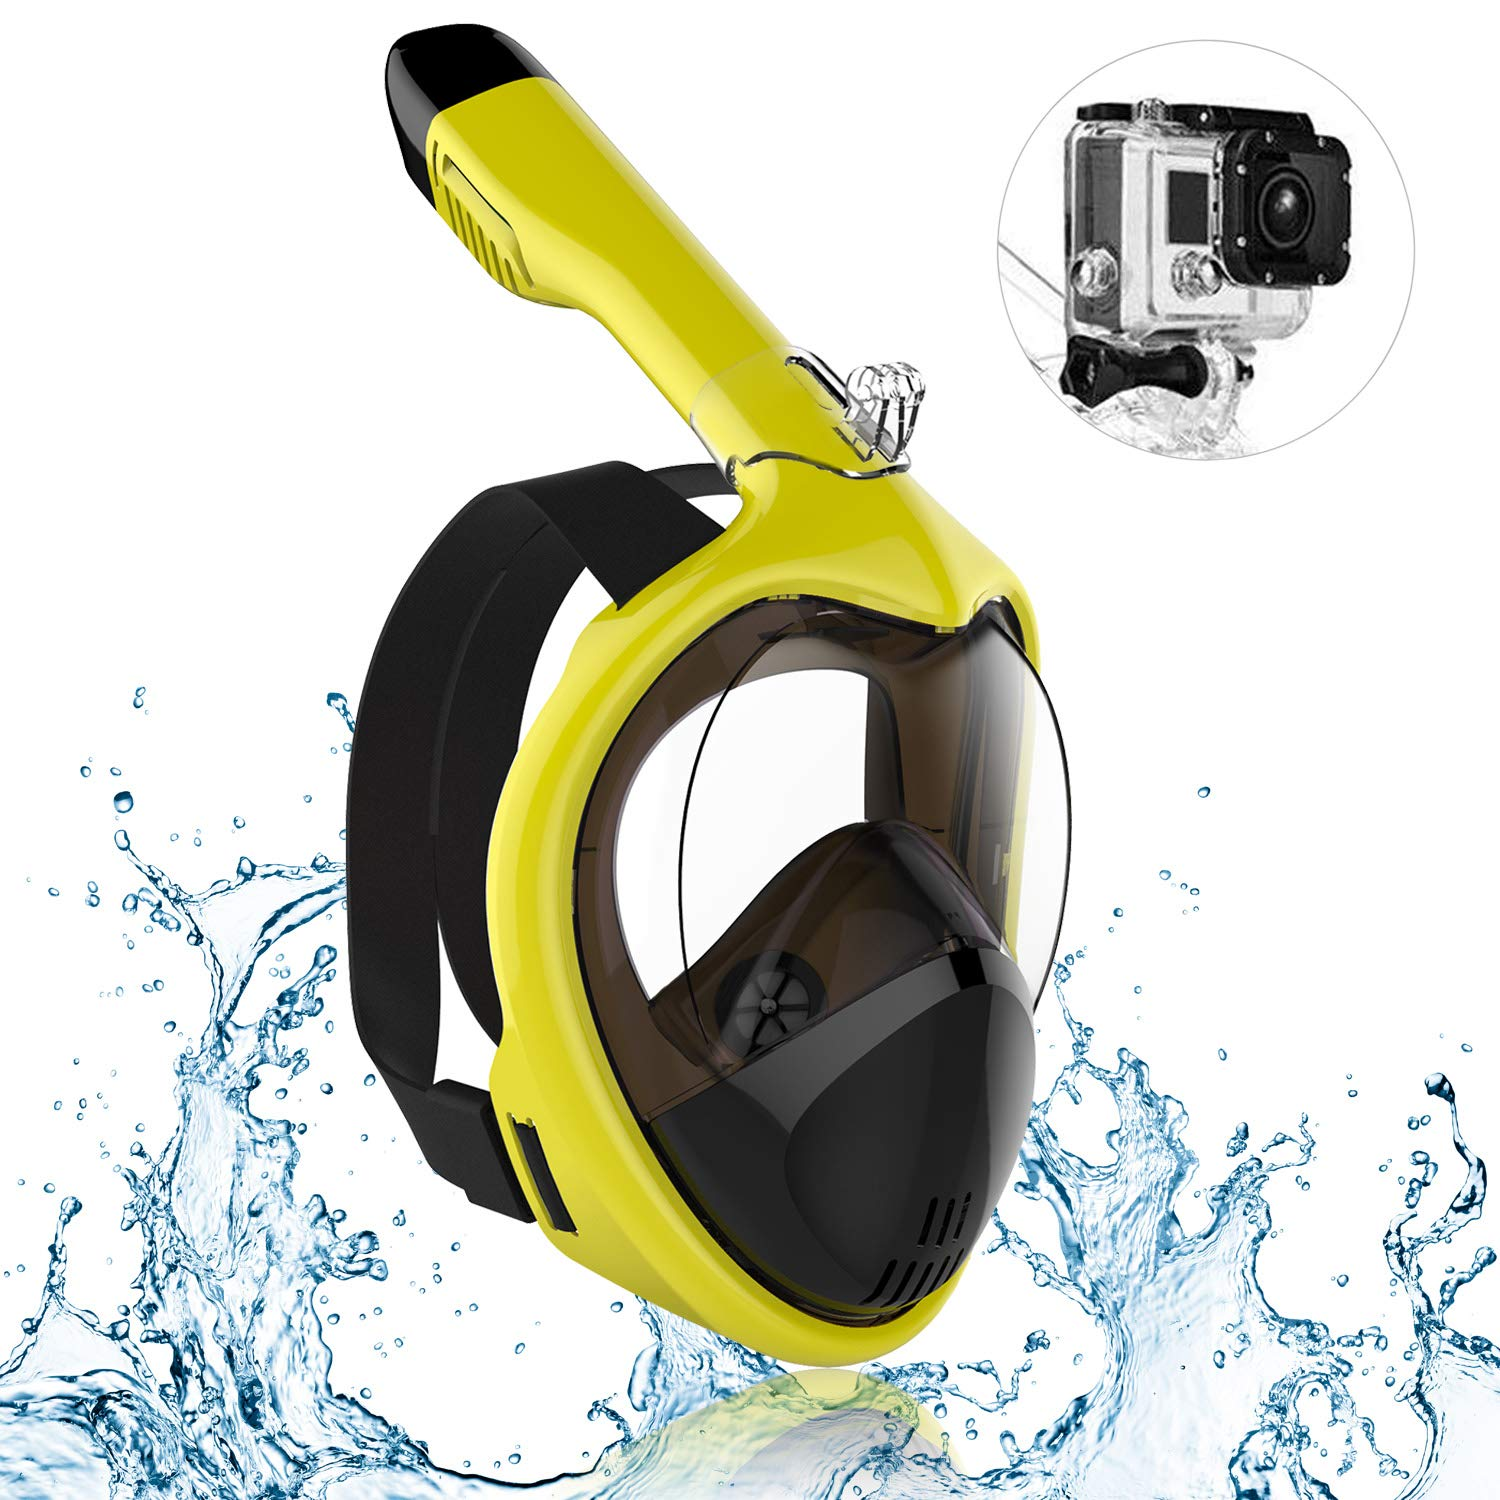 IOO Snorkel Mask Full Face for Adult Youth and Kids 180 Degree Panoramic View Anti-Fog & Anti-Leak GoPro Compatible Snorkeling Set Yellow L/XL by IOO